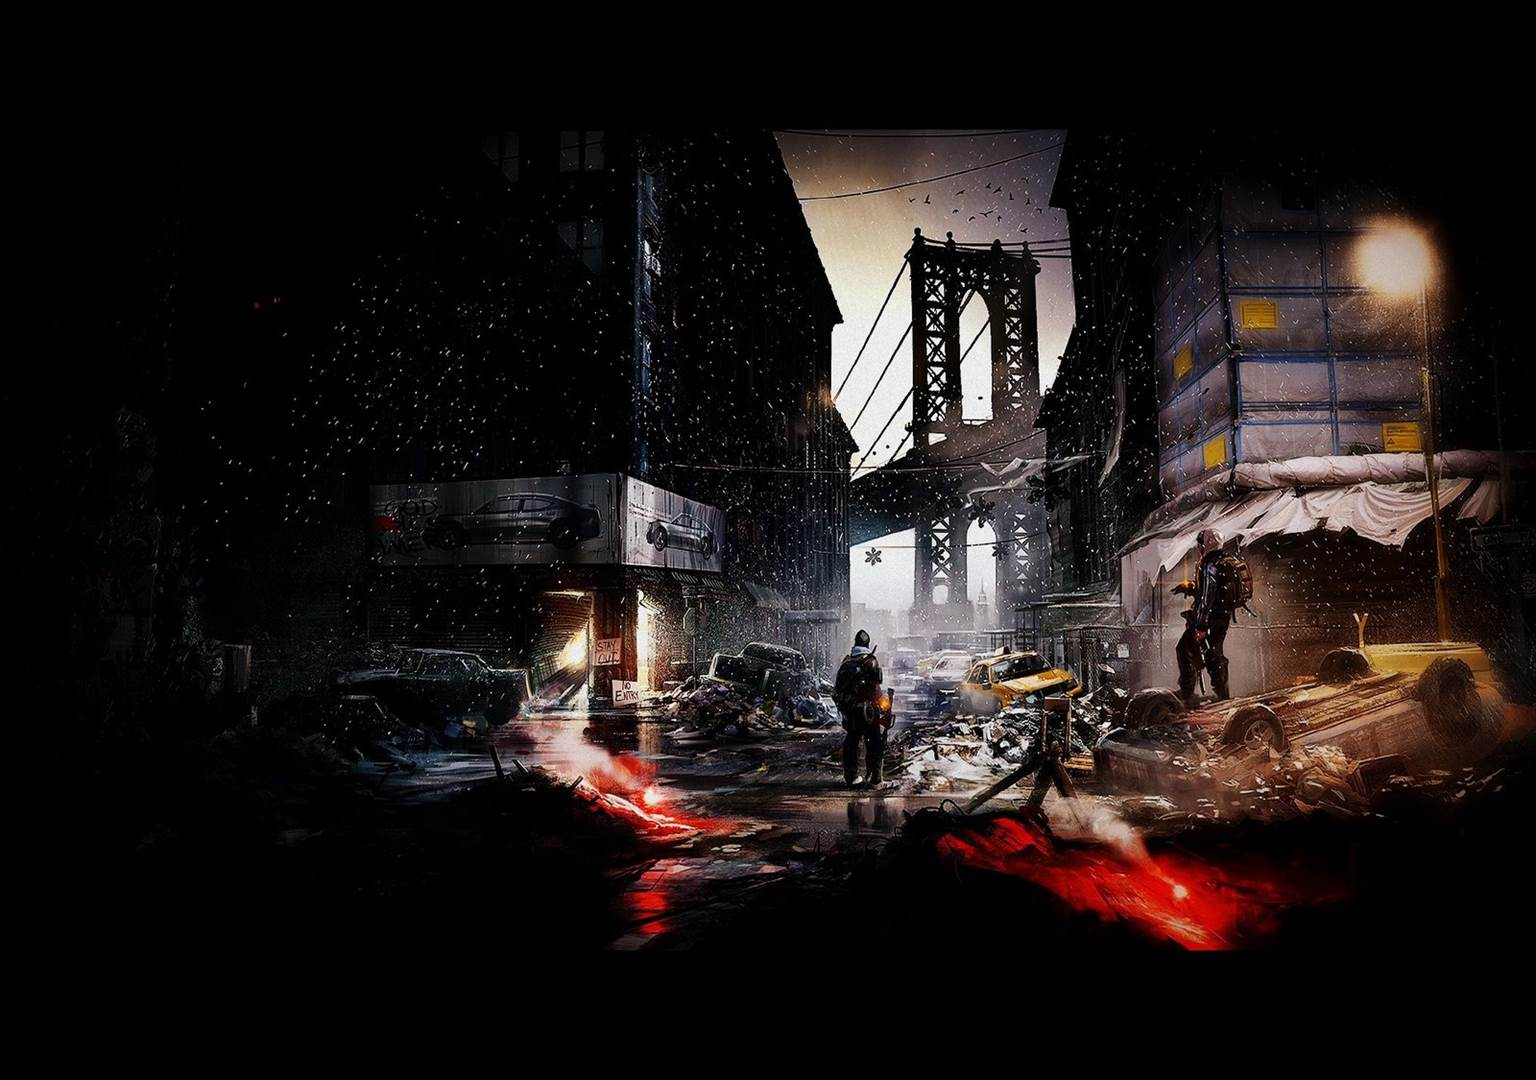 Free Download Tom Clancys The Division Wallpapers In 1080p